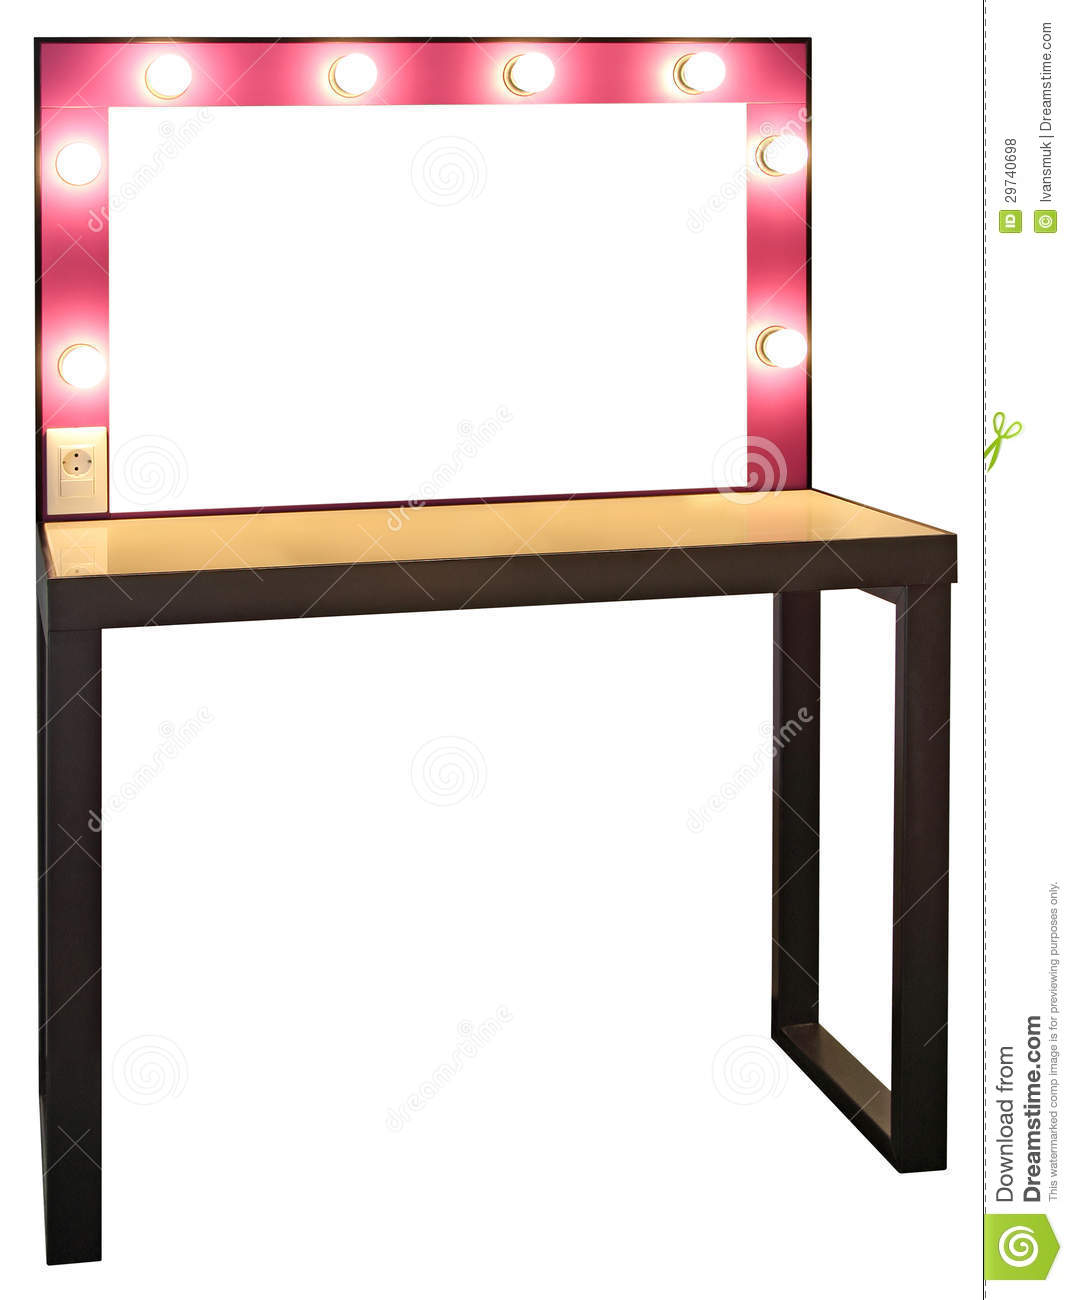 Table de maquillage photo stock image du cr ateur - Table de maquillage conforama ...